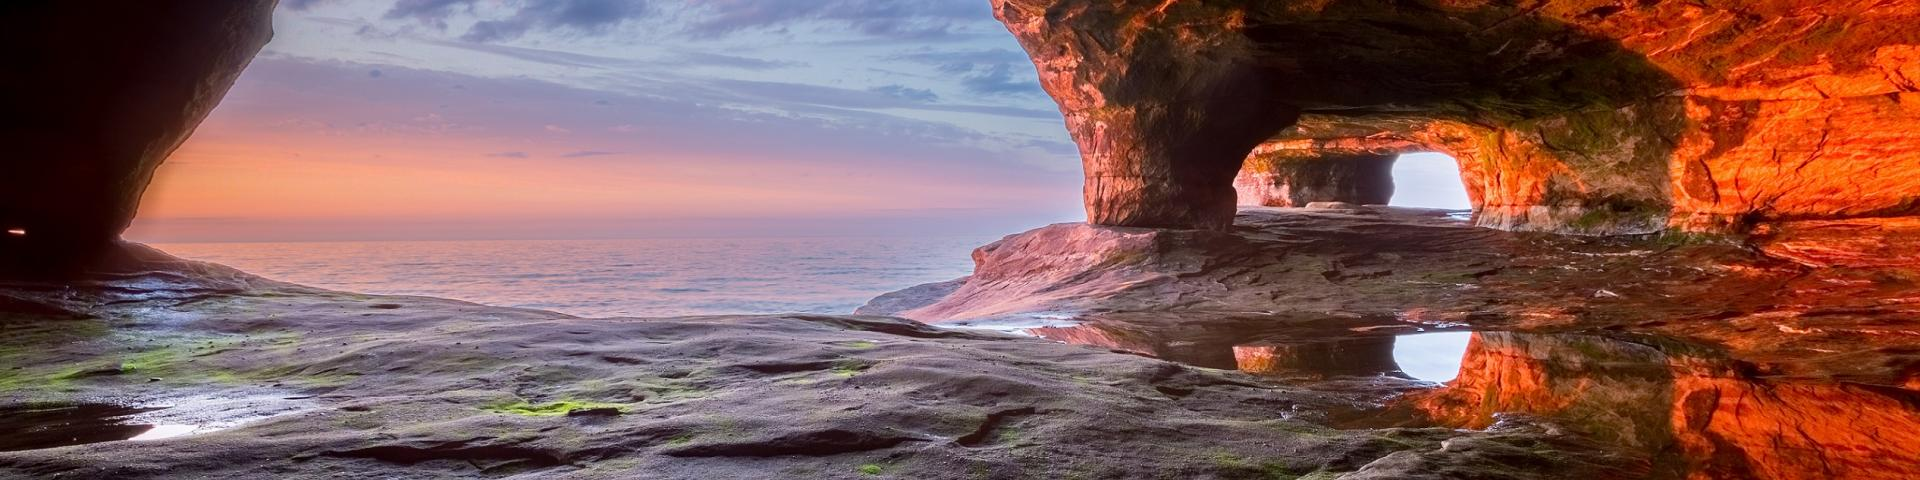 Apostle Islands caves in Lake Superior